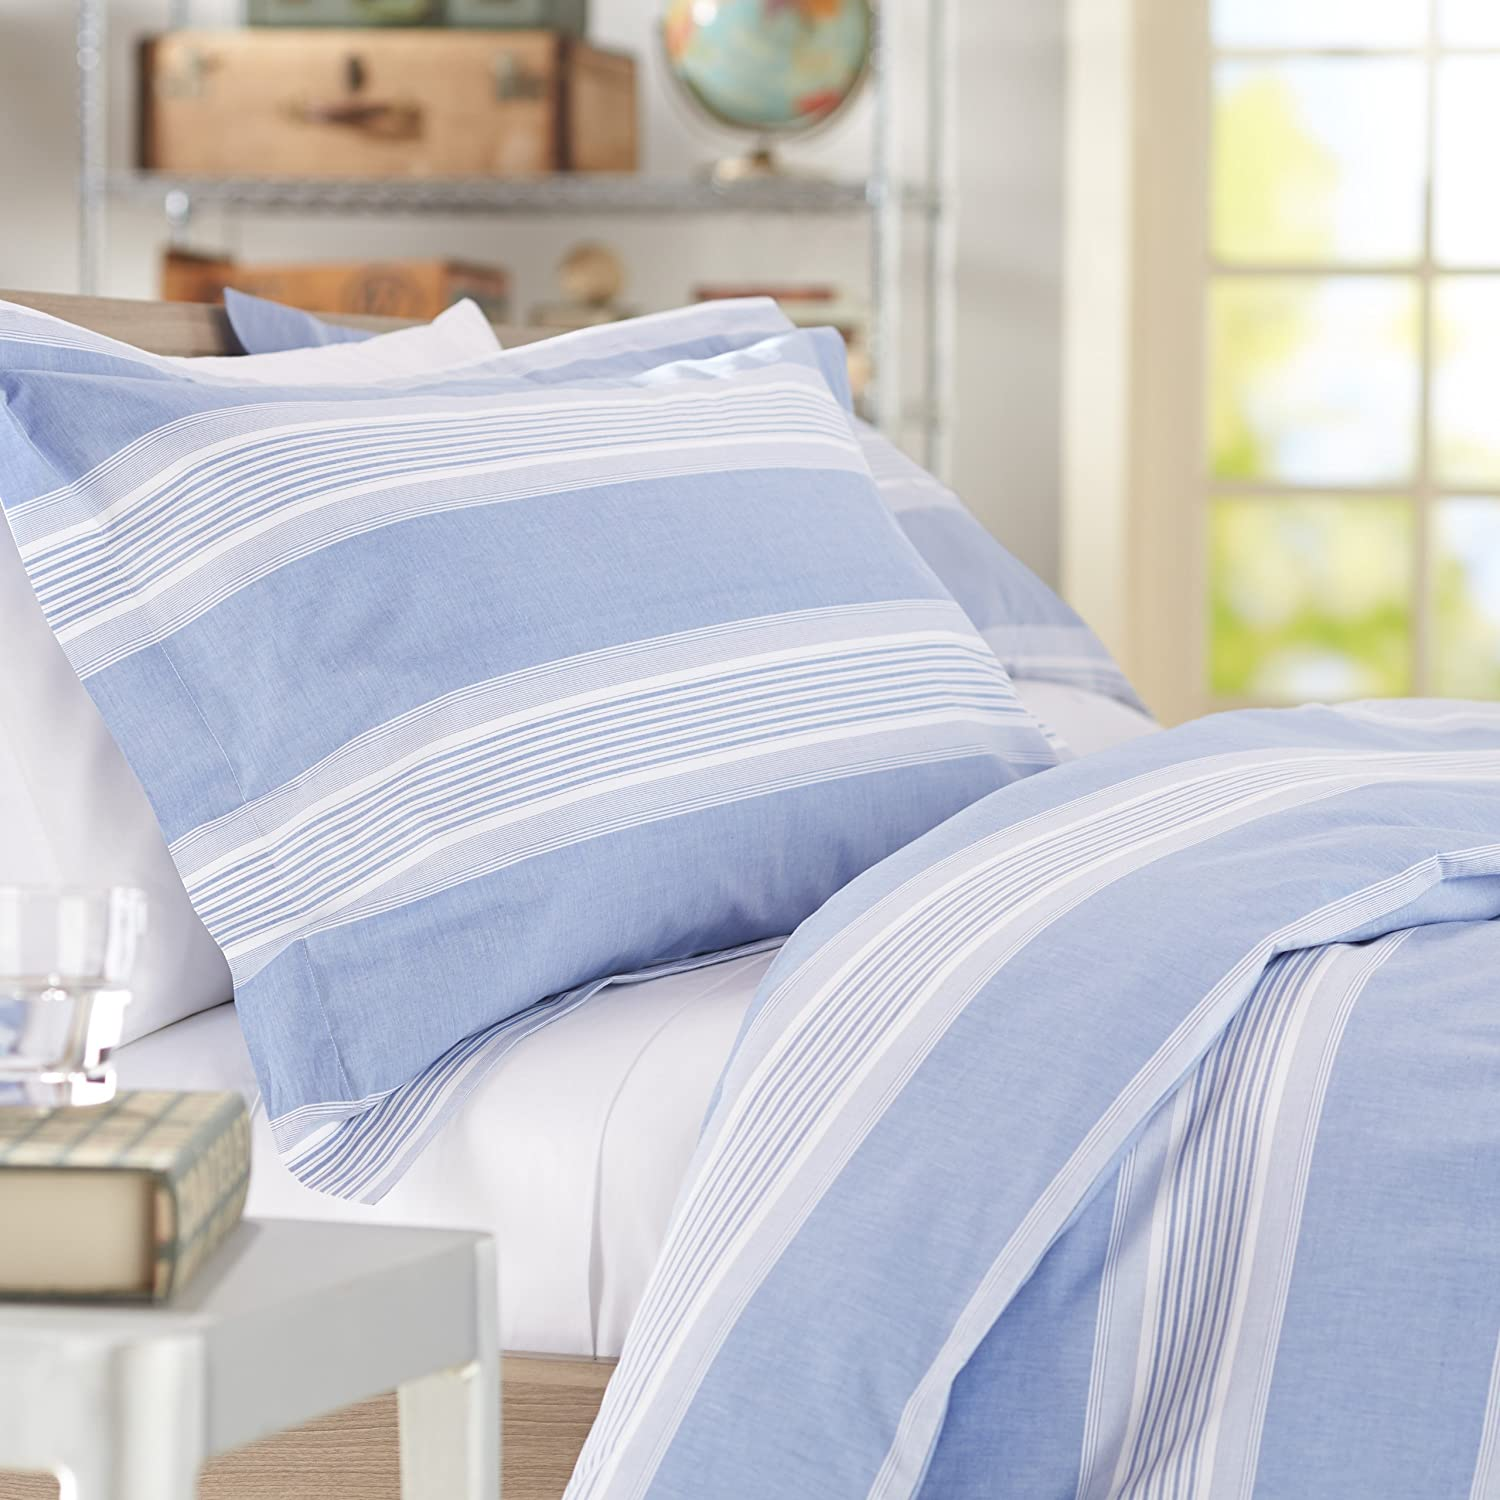 the greystone blend following is temple quilt under linen sometimes cover webster listed numbers manufacturer chambray also sku duvet